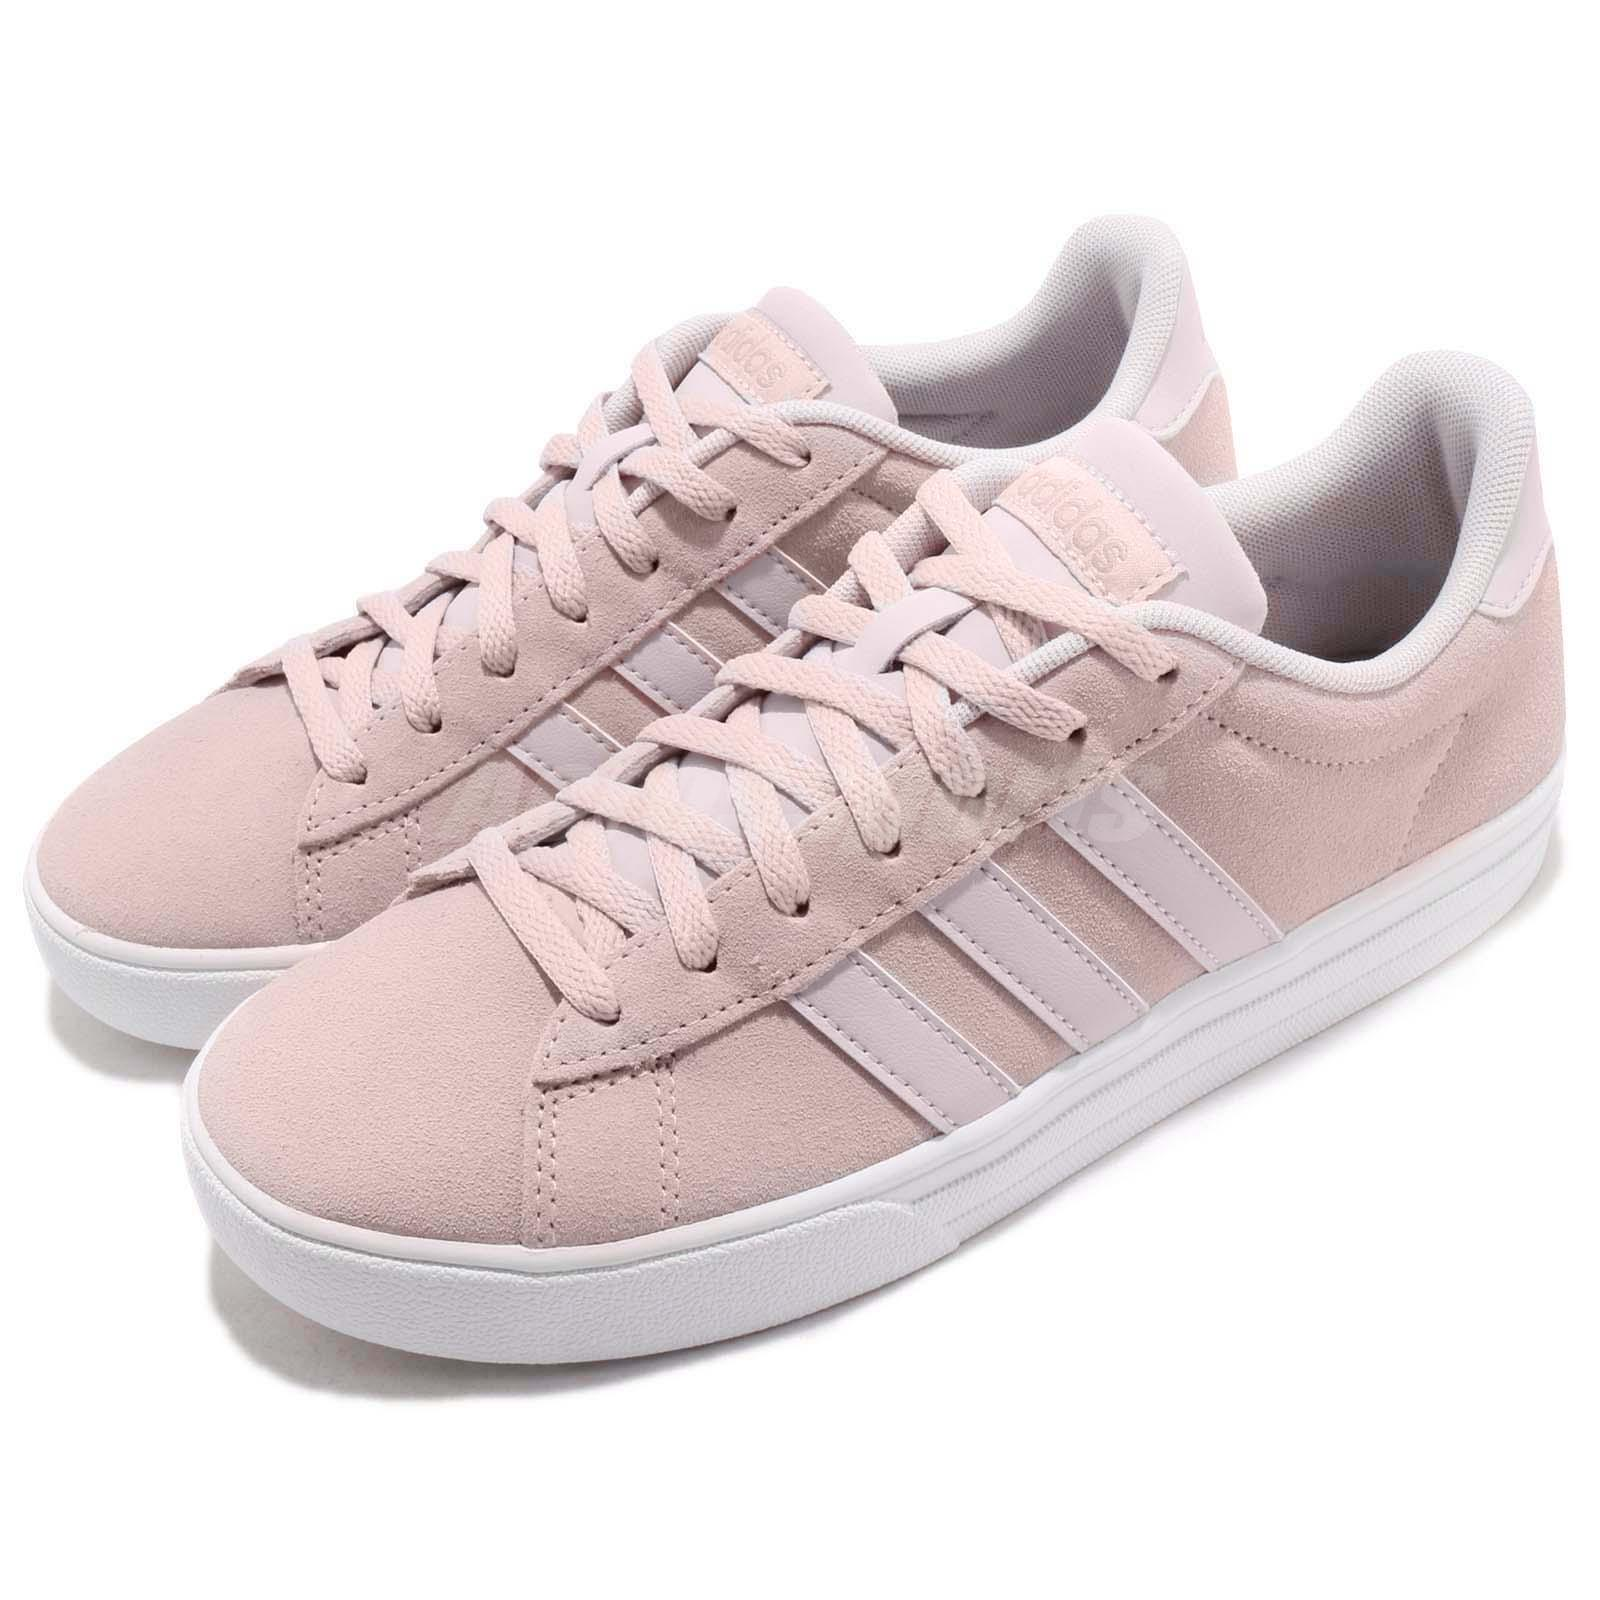 2b7c766a Details about adidas Daily 2.0 Ice Purple White Pink Women Casual Shoes  Sneakers B42092